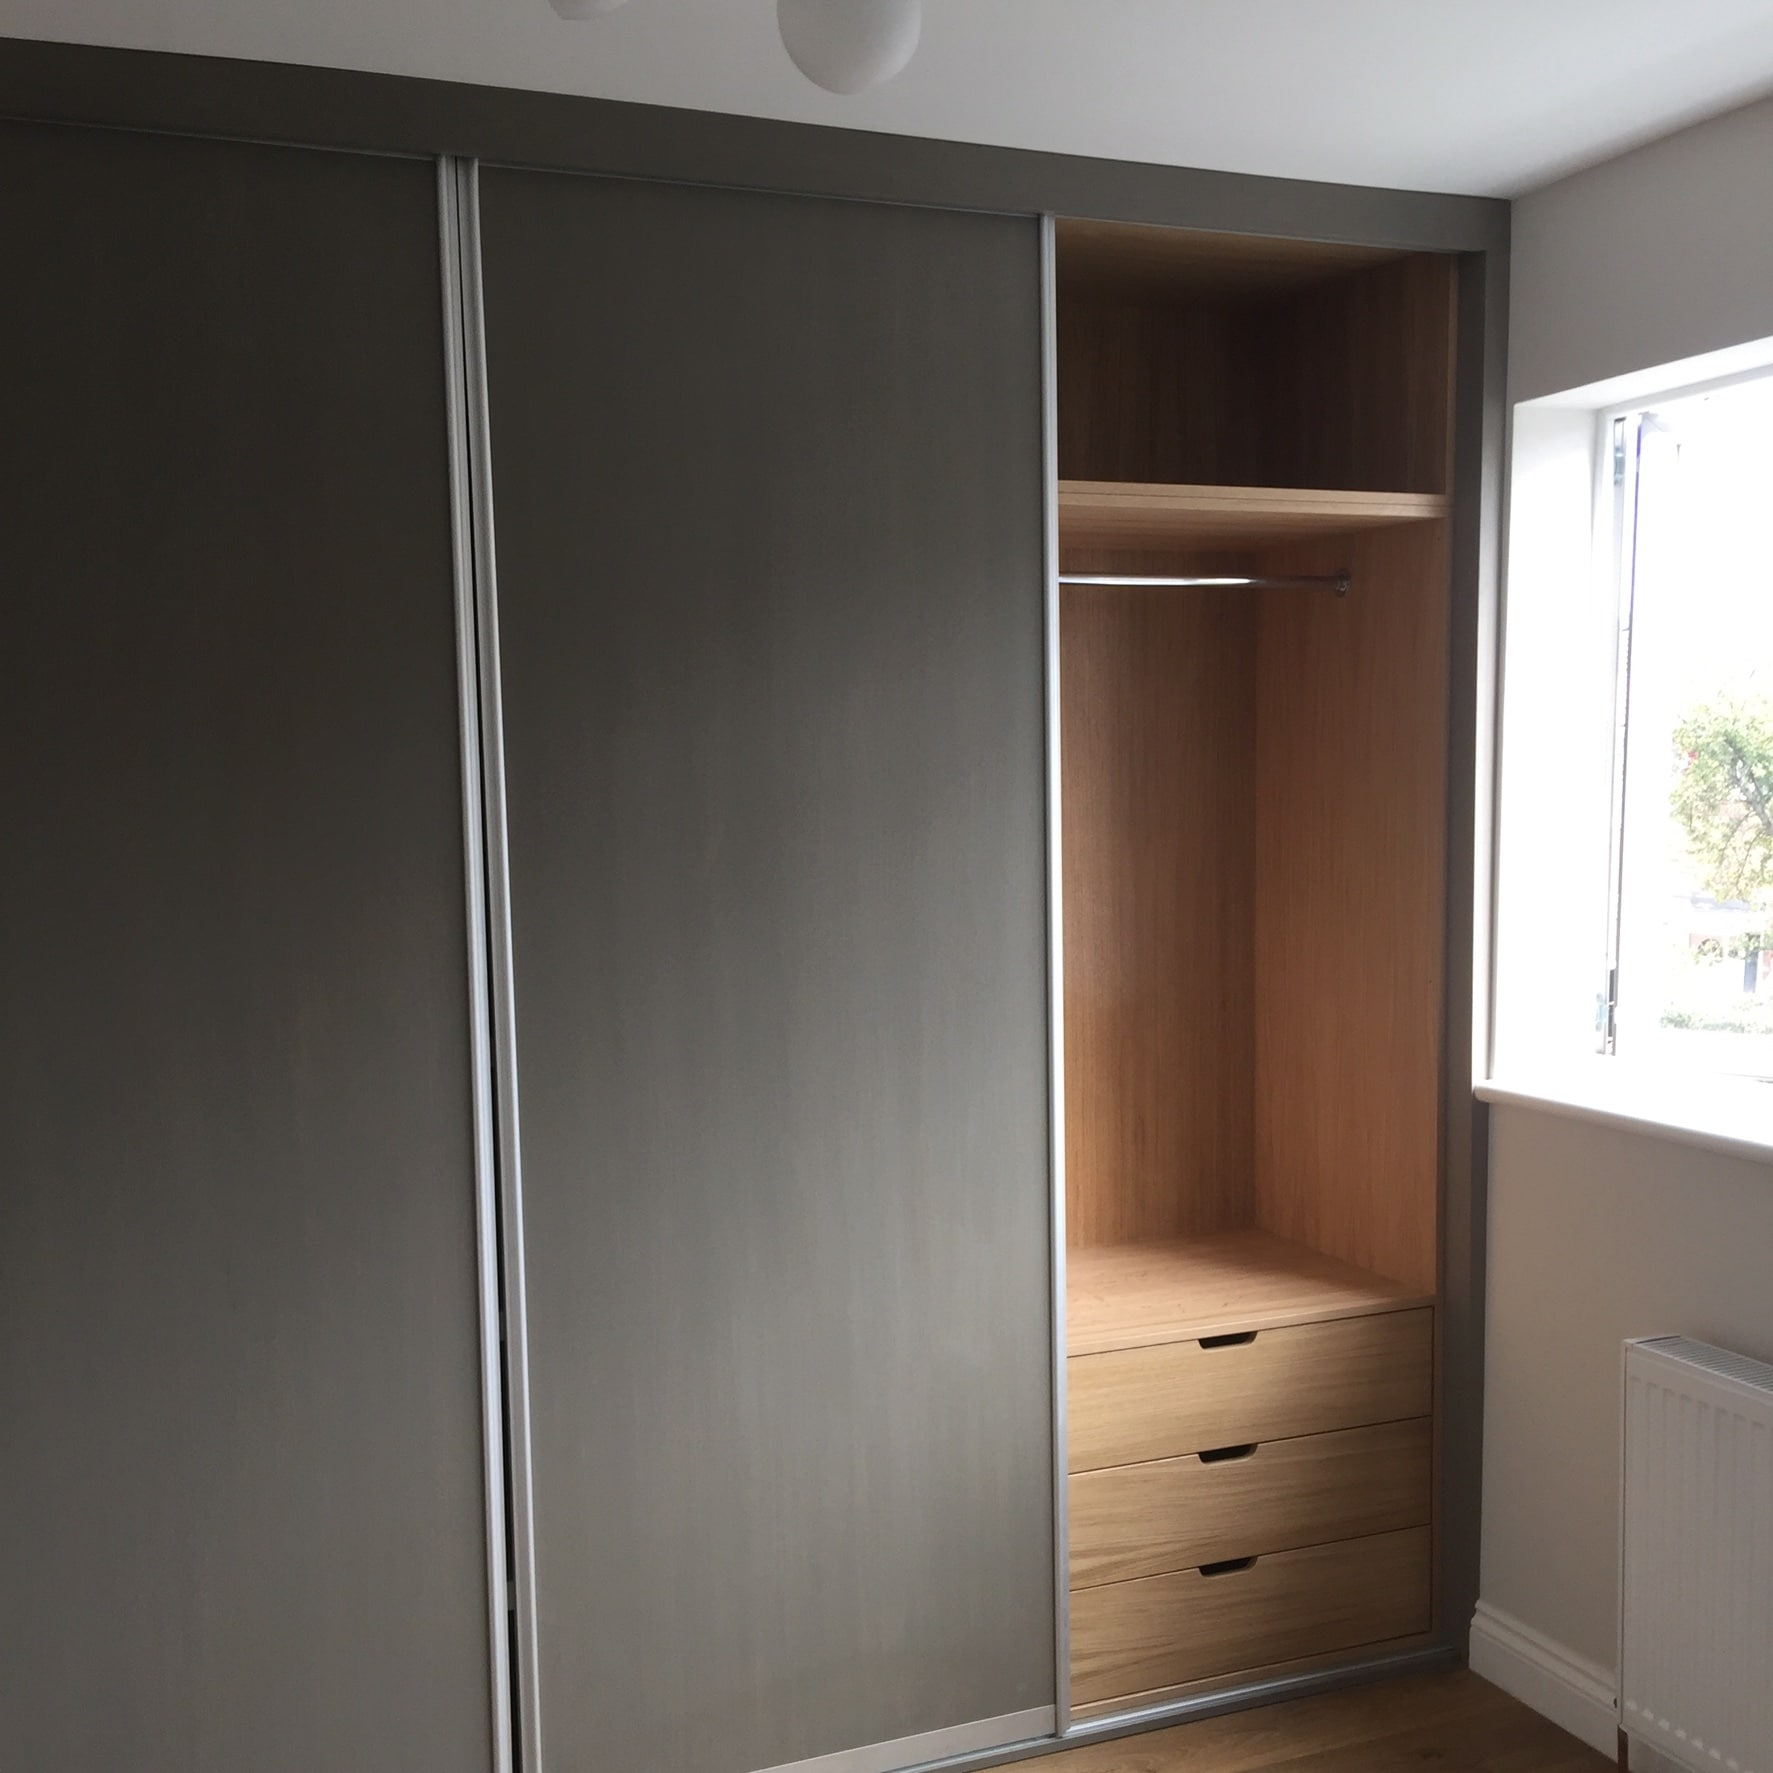 Built in wardrobe in grey with sliding door.